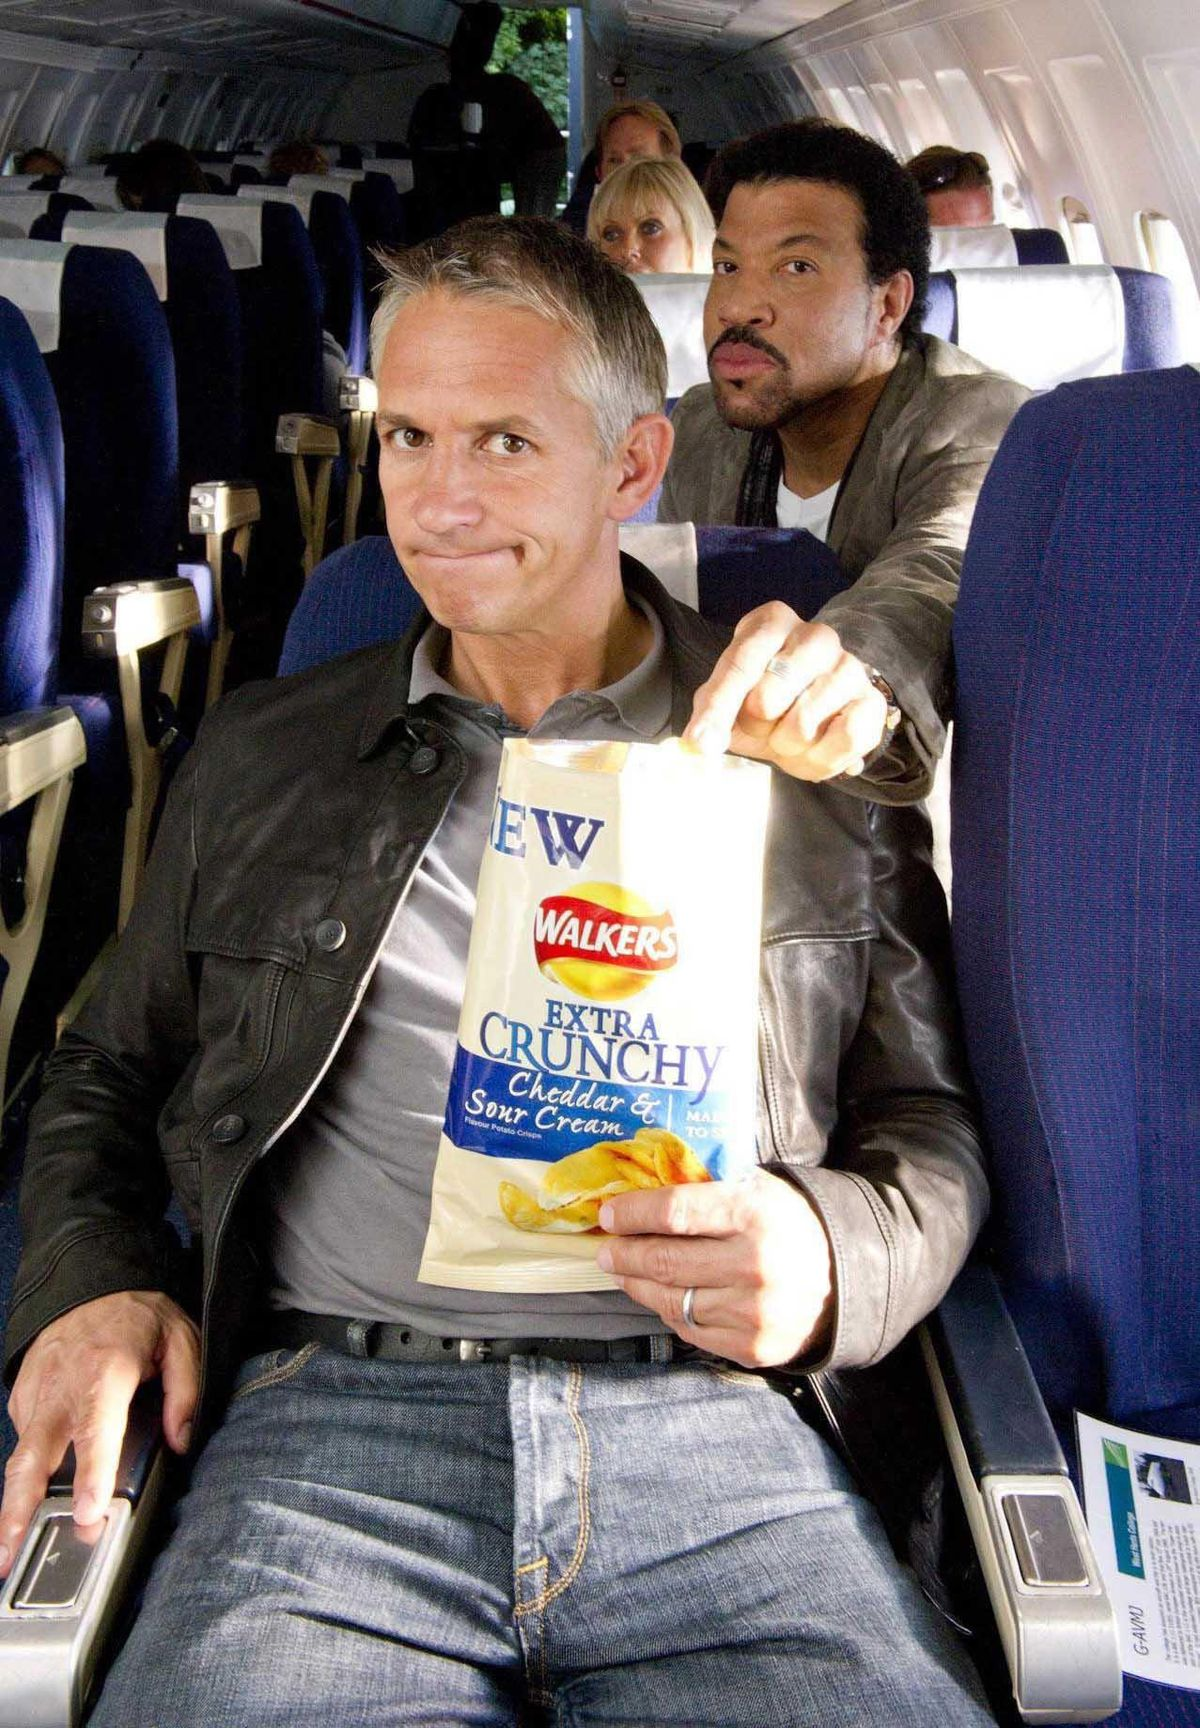 Gary Lineker has fronted Walkers crisp adverts for more than 20 years